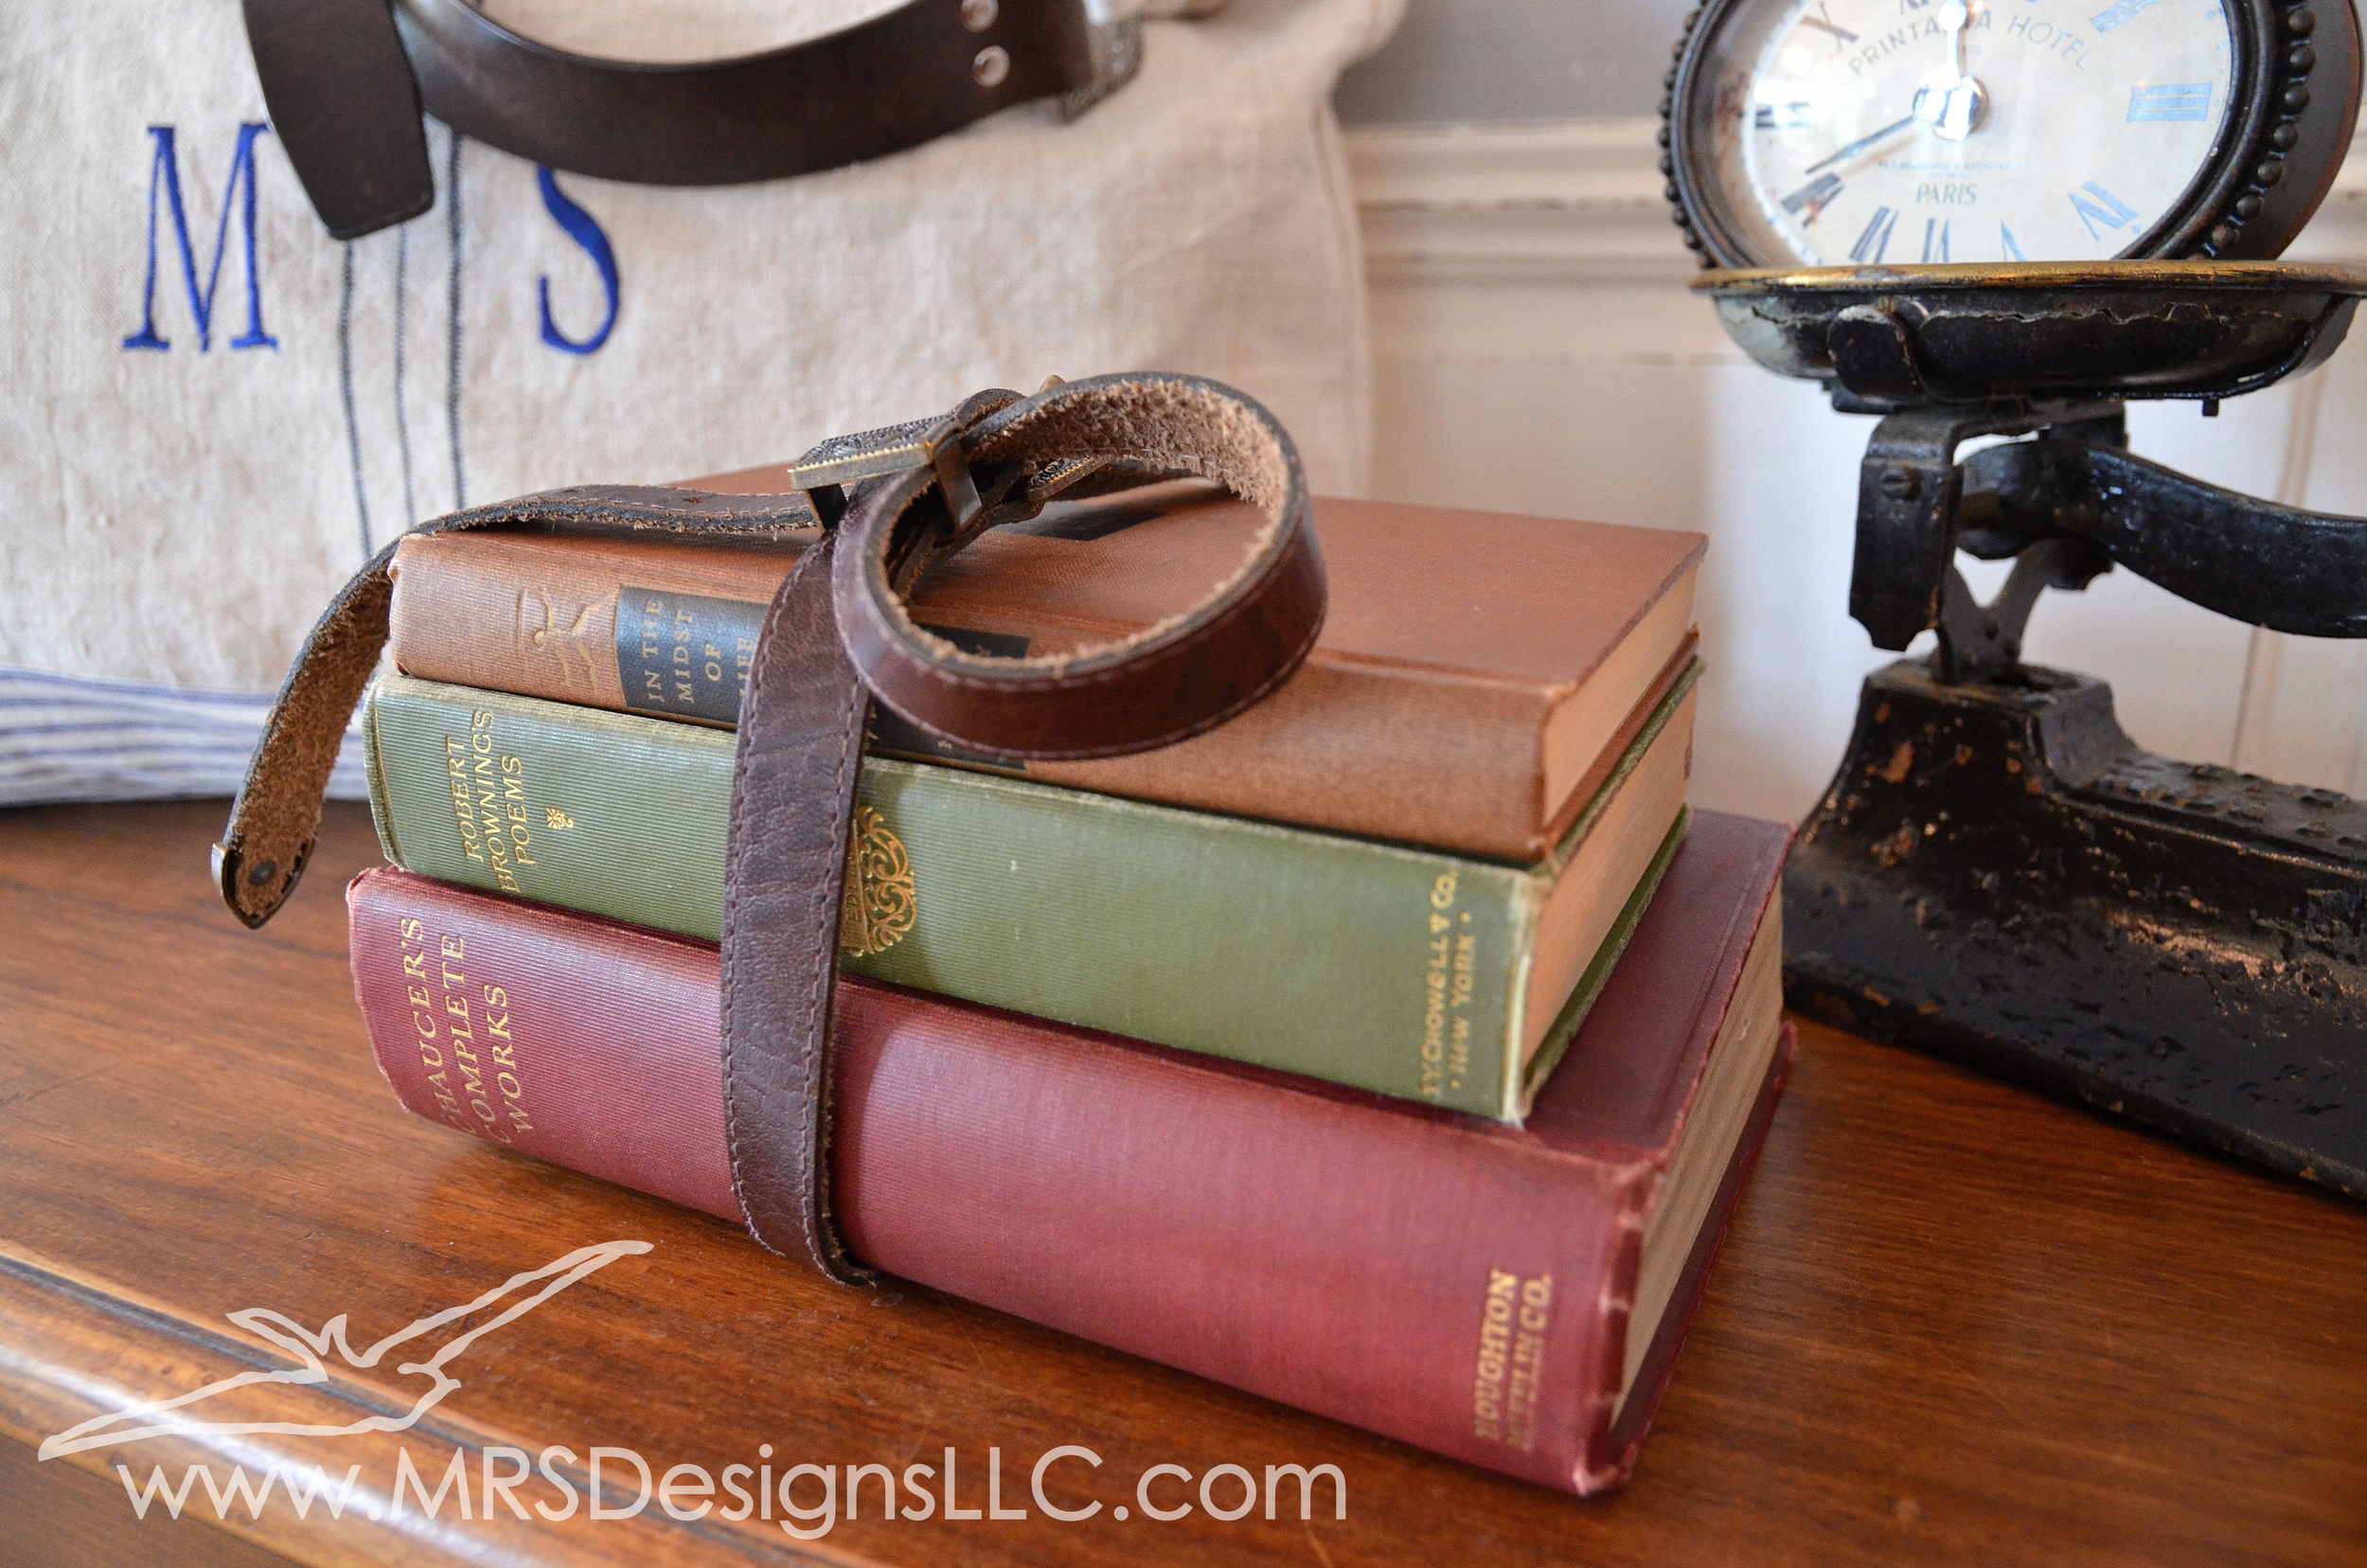 MRS Designs Blog - Back to School Decorating. Take a few books and wrap them with an old belt!